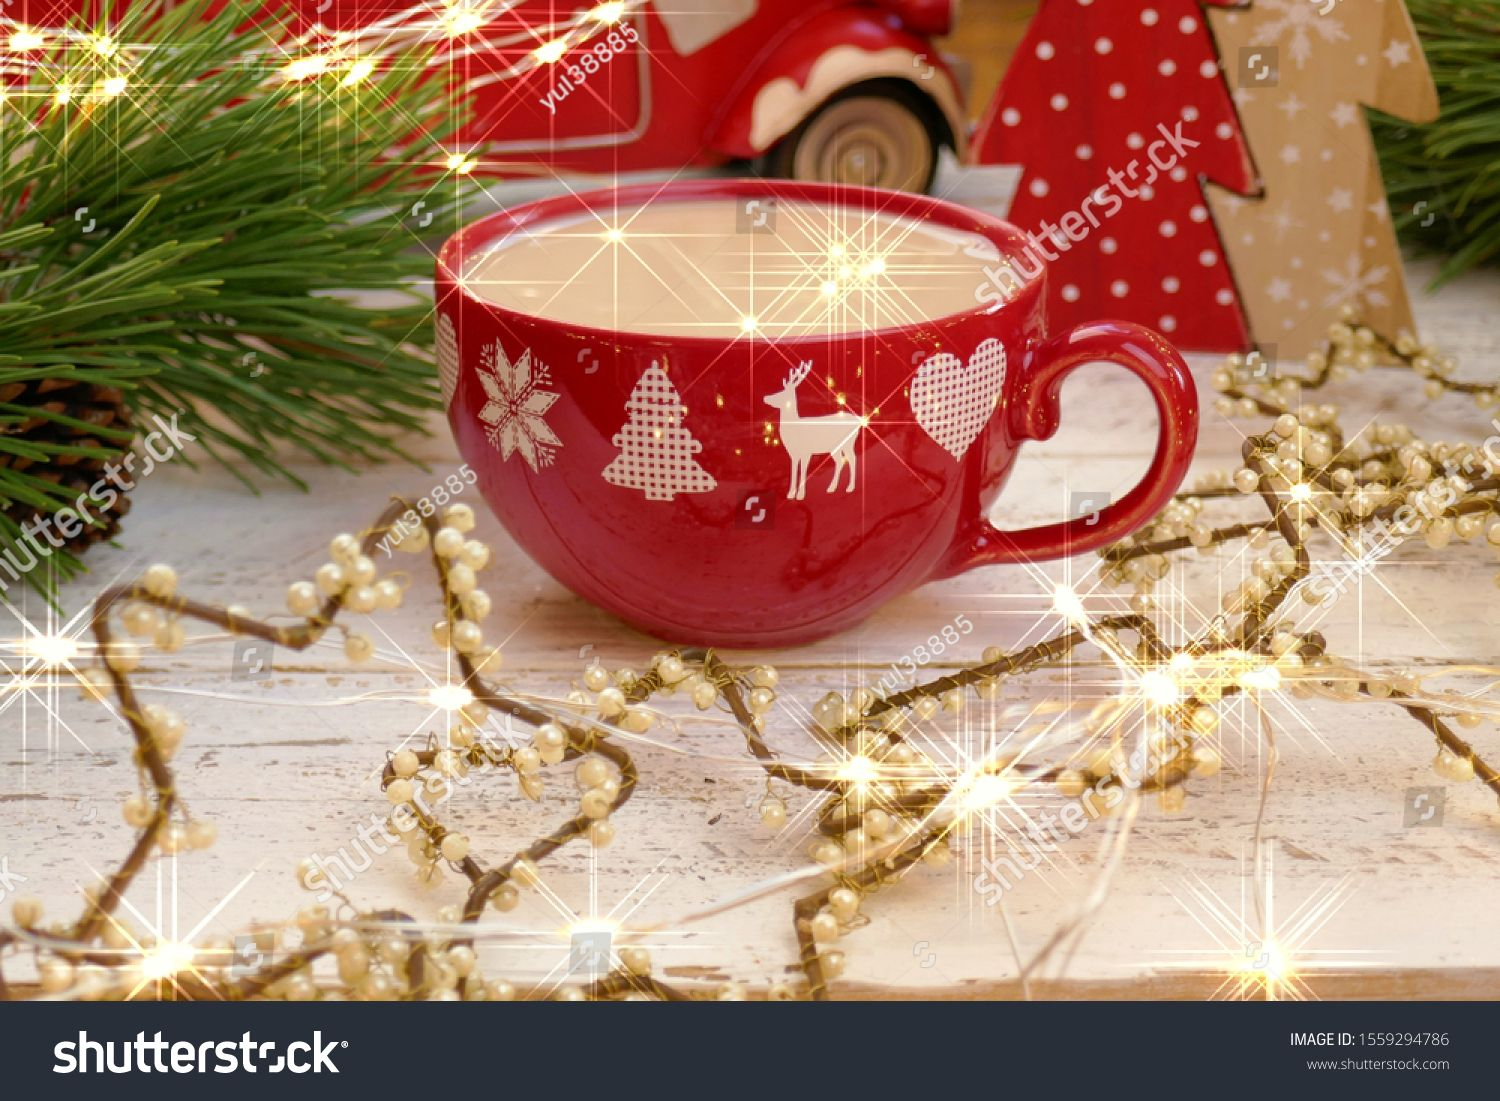 Christmas Hot Drink Coffee In A Red Mug With Deers Christmas Decor Spruce Branch With Shining Highlights Garland Winter Holidays New Red Mug Mugs Hot Drink Hd wallpaper red mug garland light